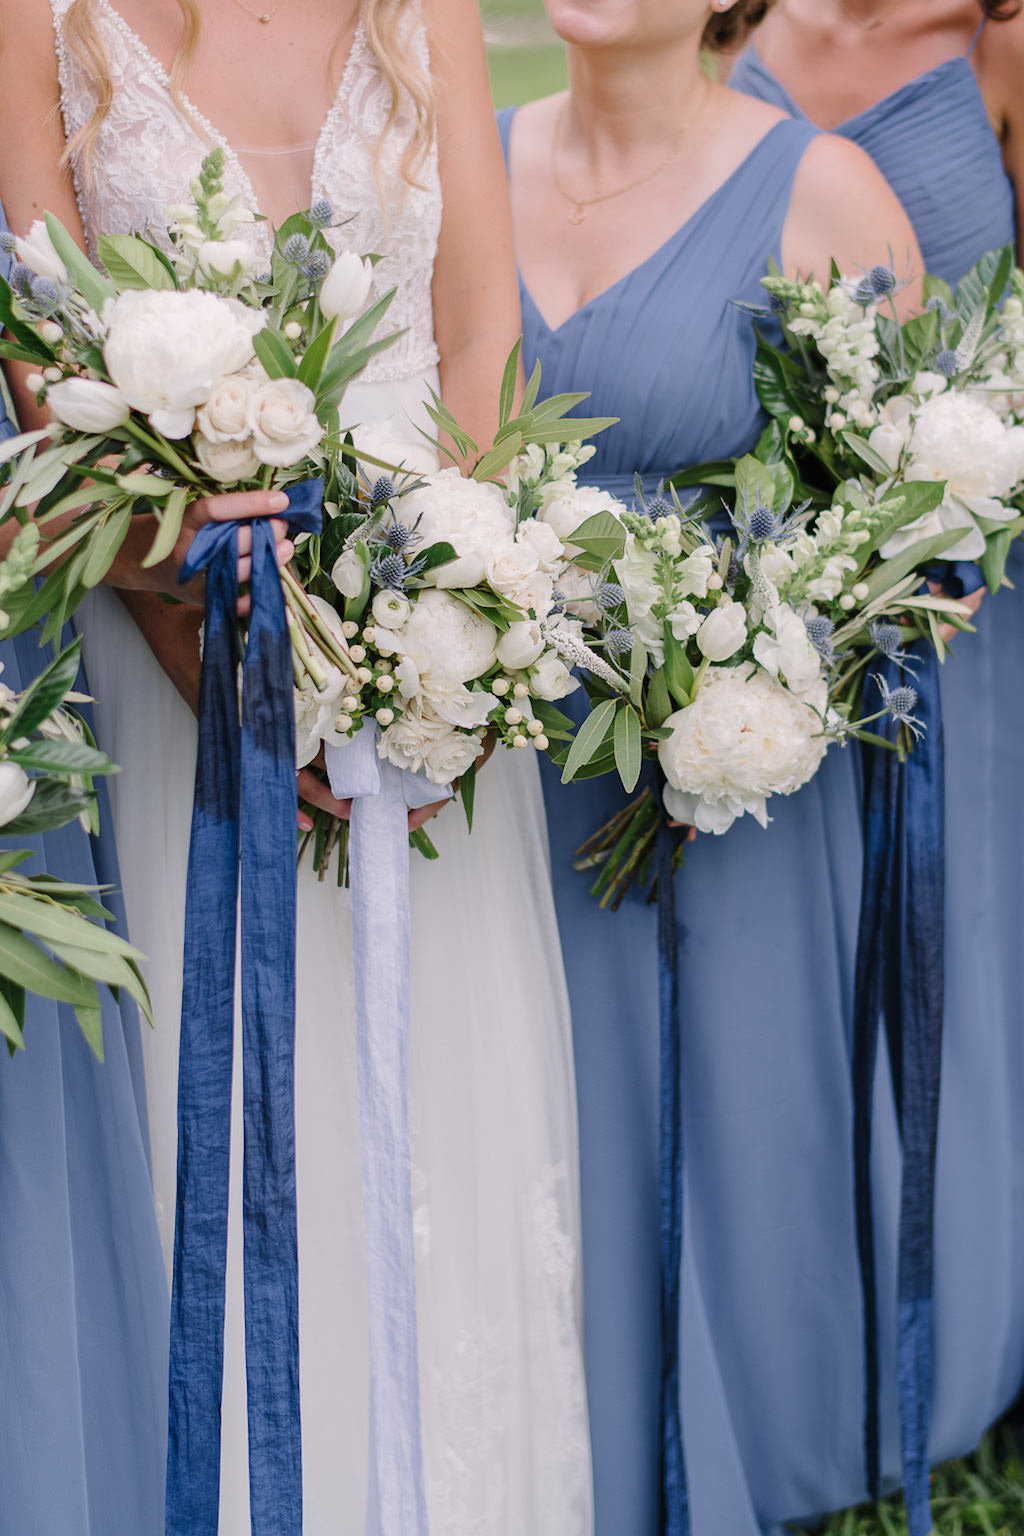 Outdoor Bridal Party Portrait, Bride in Plunging V Neck Illusion Lace A Line Wedding Dress, Bridesmaids in Dusty Blue Tank Top Dresses and White and Greenery Floral Bouquets